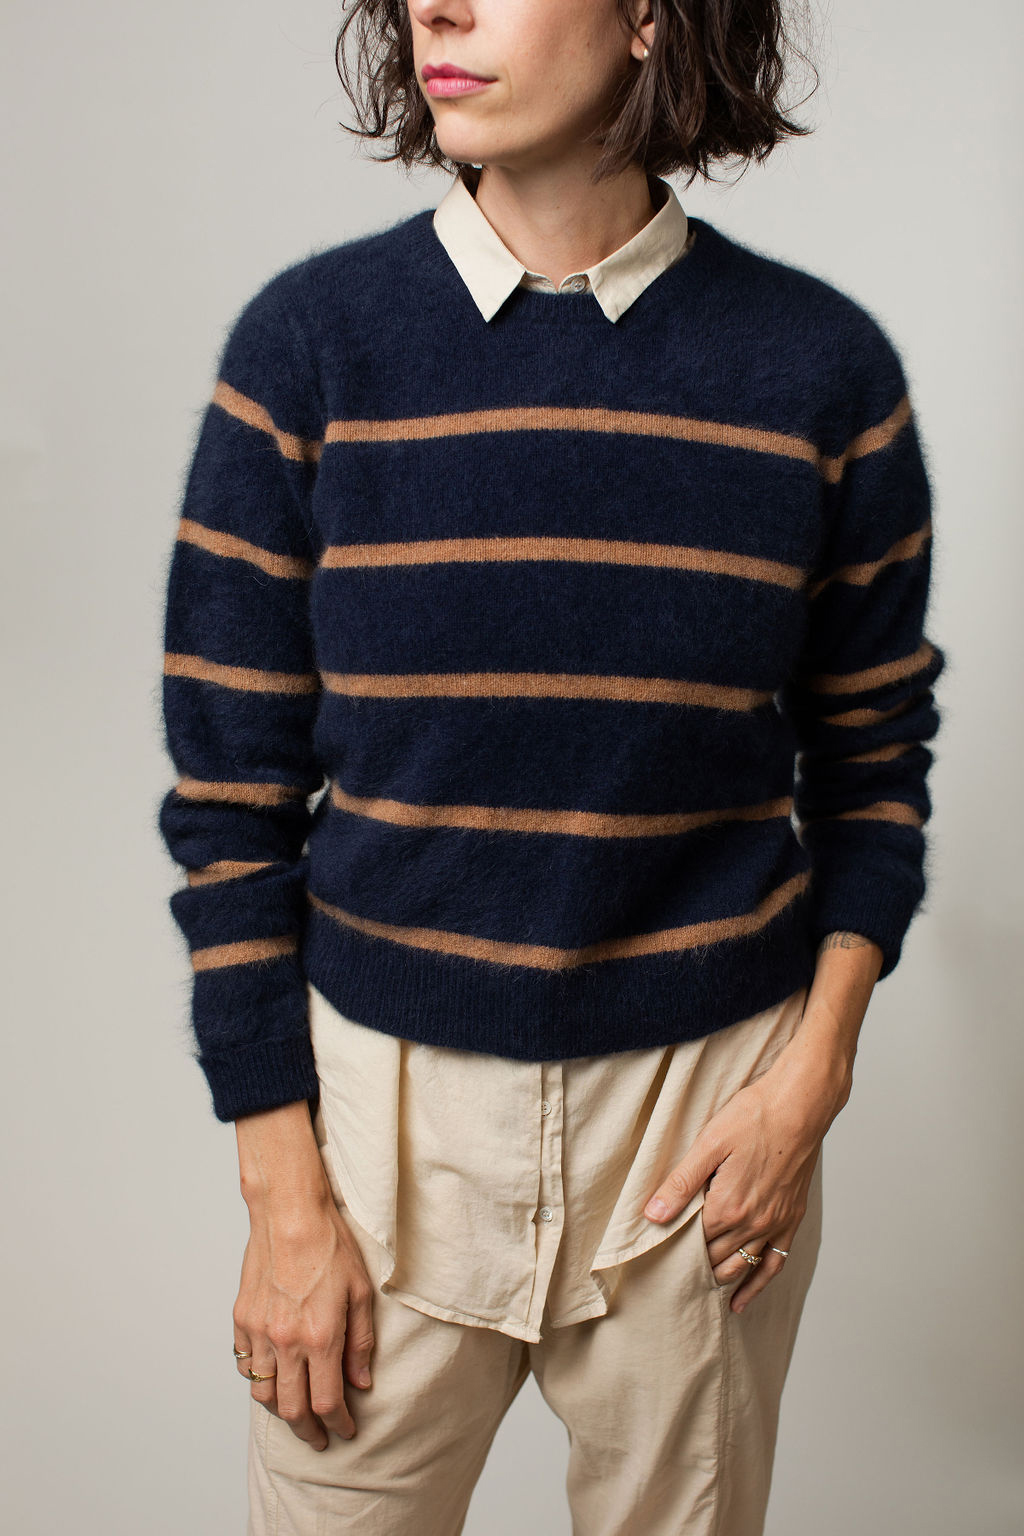 swtr striped sweater with xirena shirt